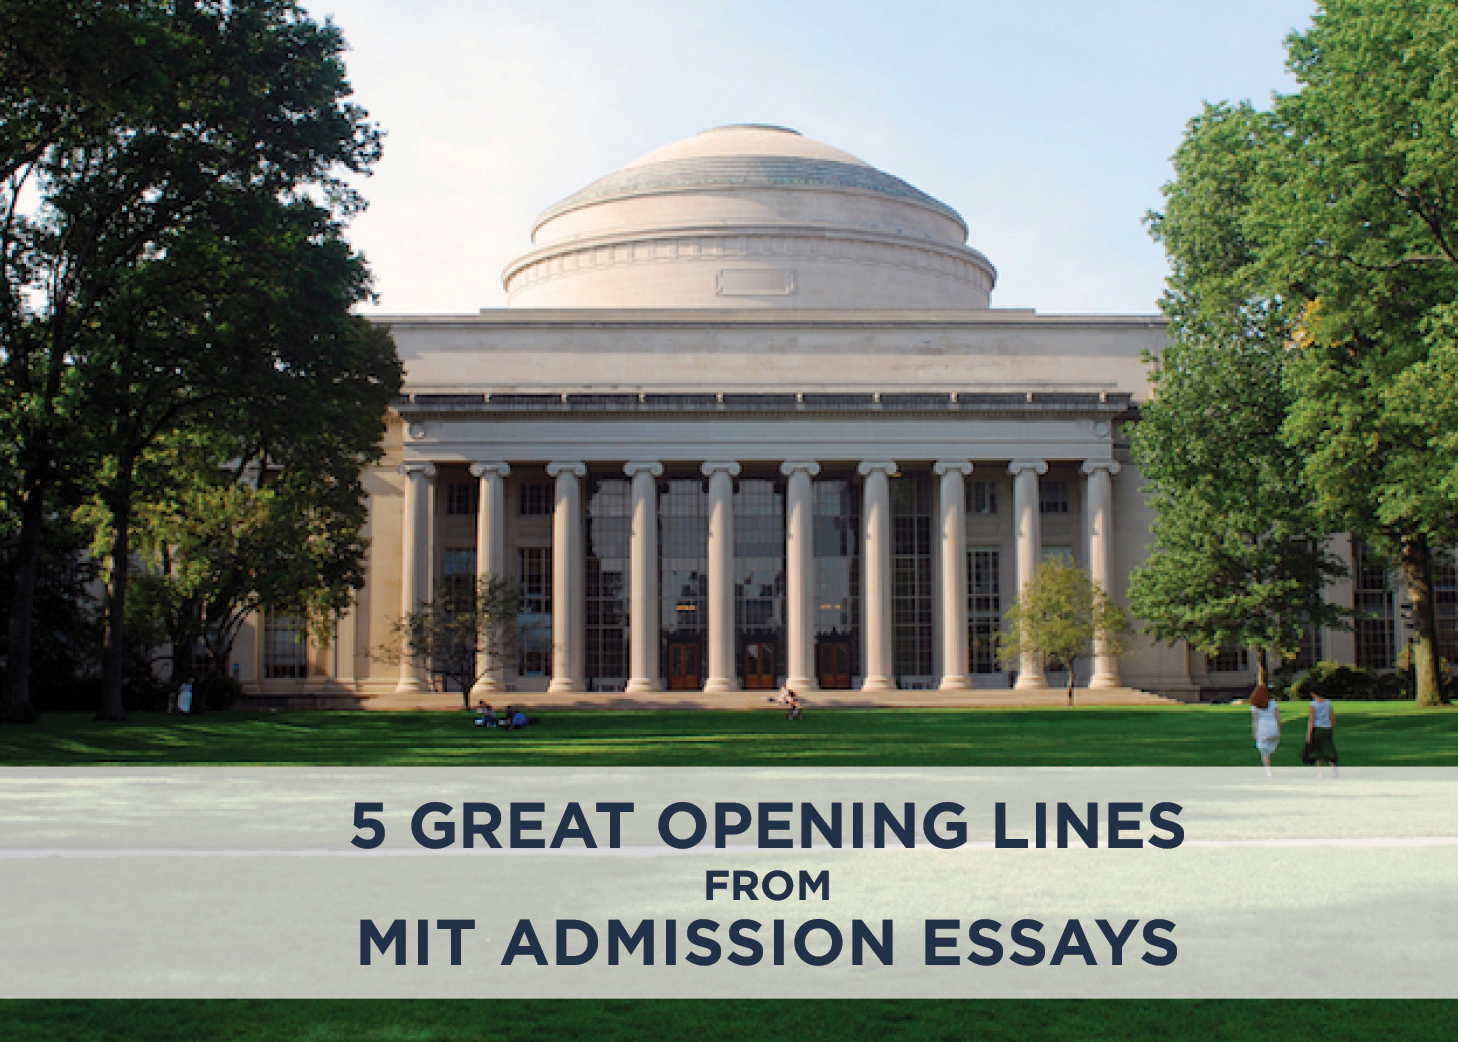 great opening lines from mit admissions essays admitsee recent class of 2020 how can you one of the lucky few the winning ticket take a look at the following essay intros from mit students on admitsee